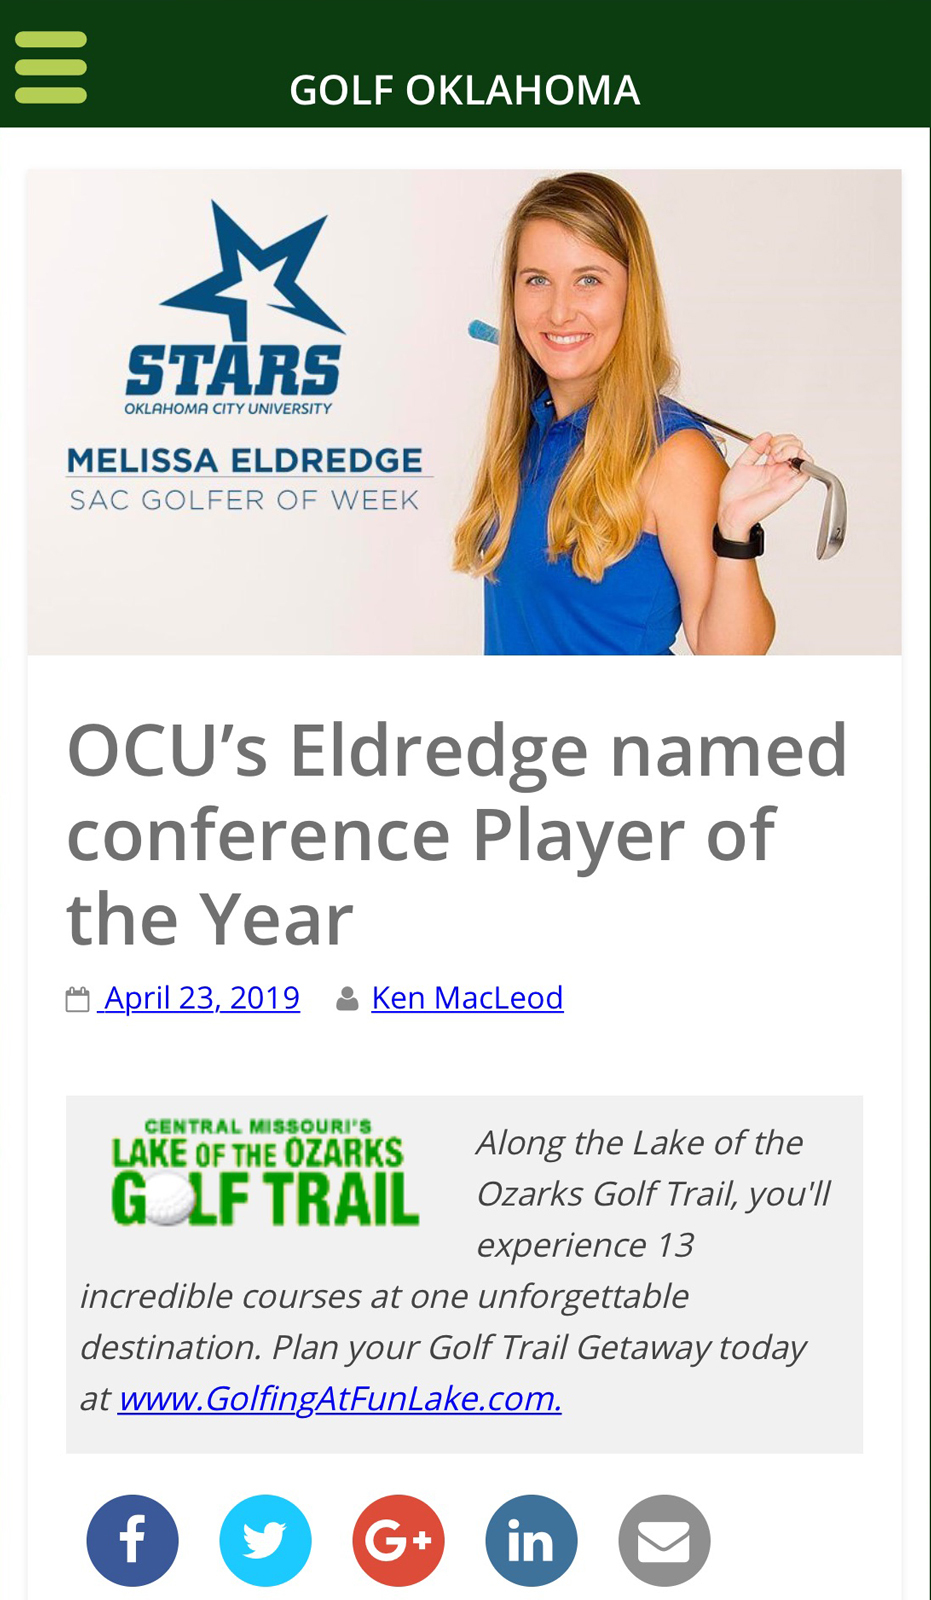 Melissa Eldredge named SAC Player of the Year